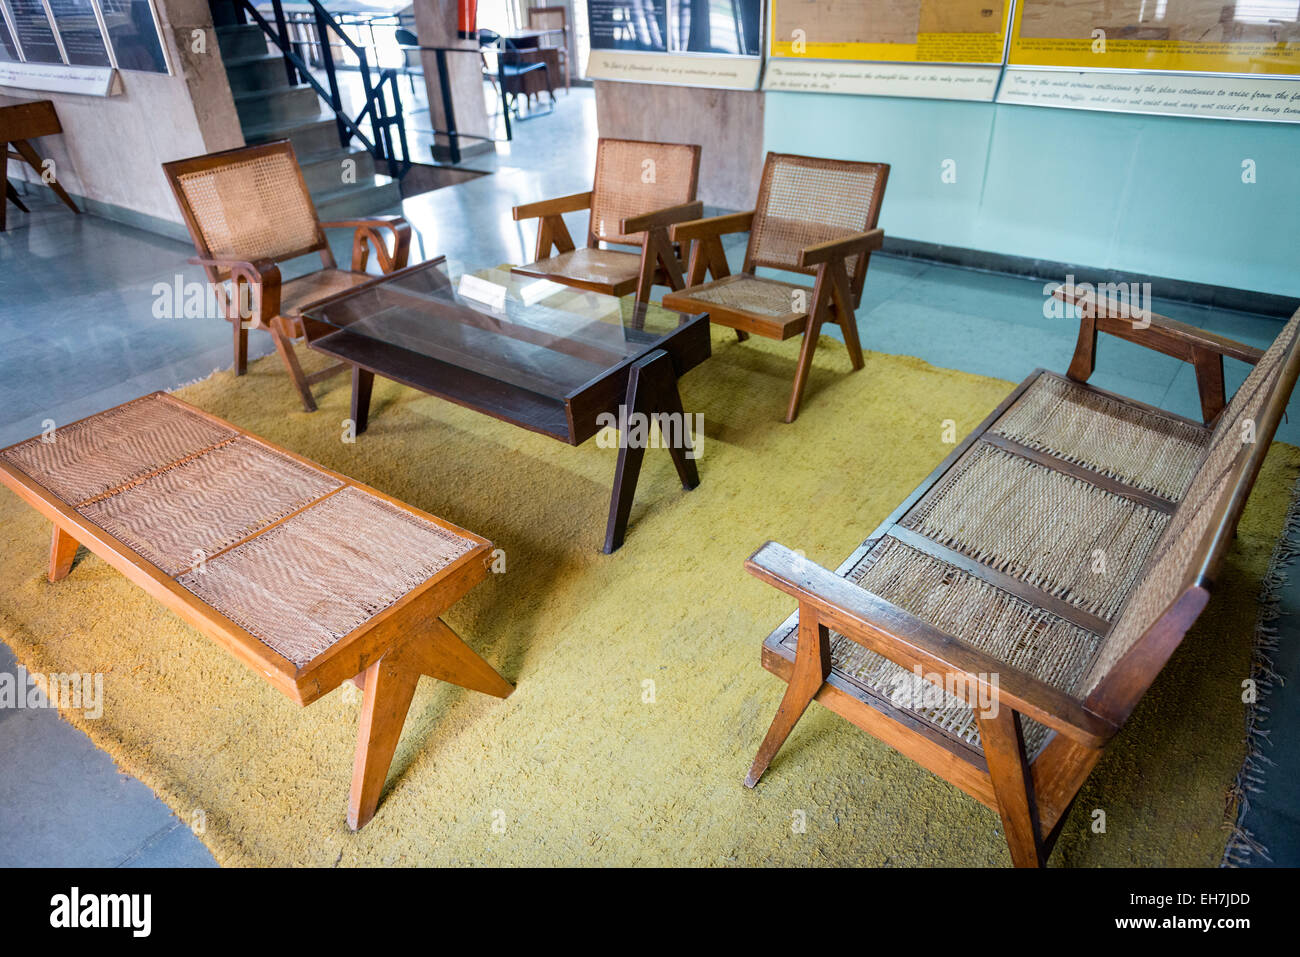 Original 1950s furniture in The Museum of Architecture in Chandigarh, India - Stock Image